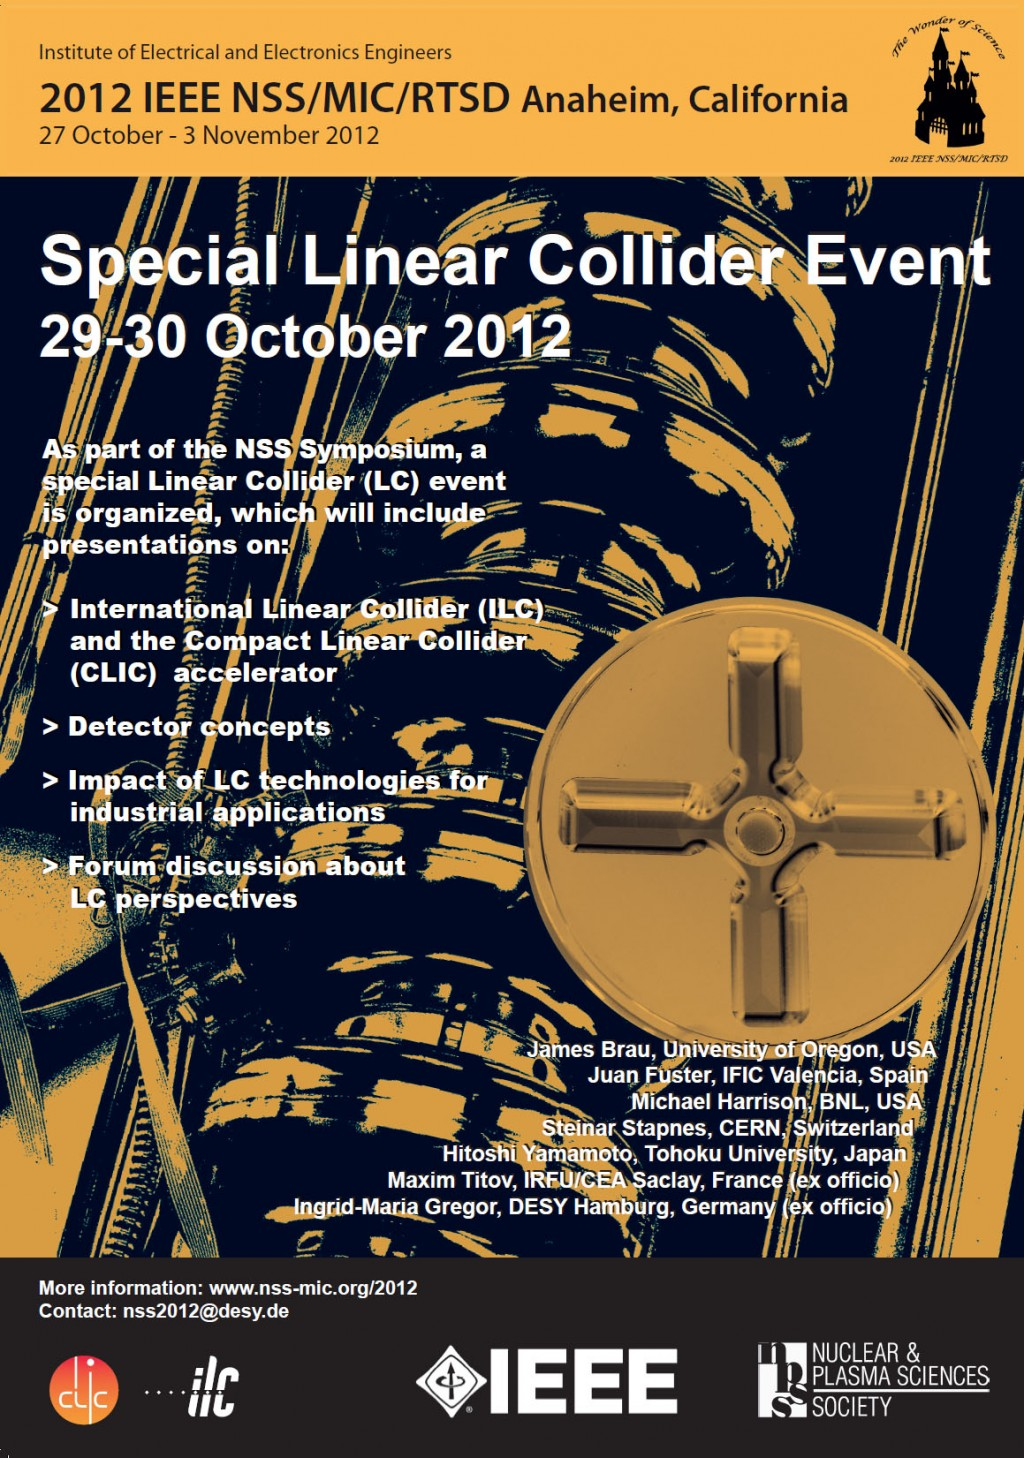 IEEE Linear Collider Event meeting poster